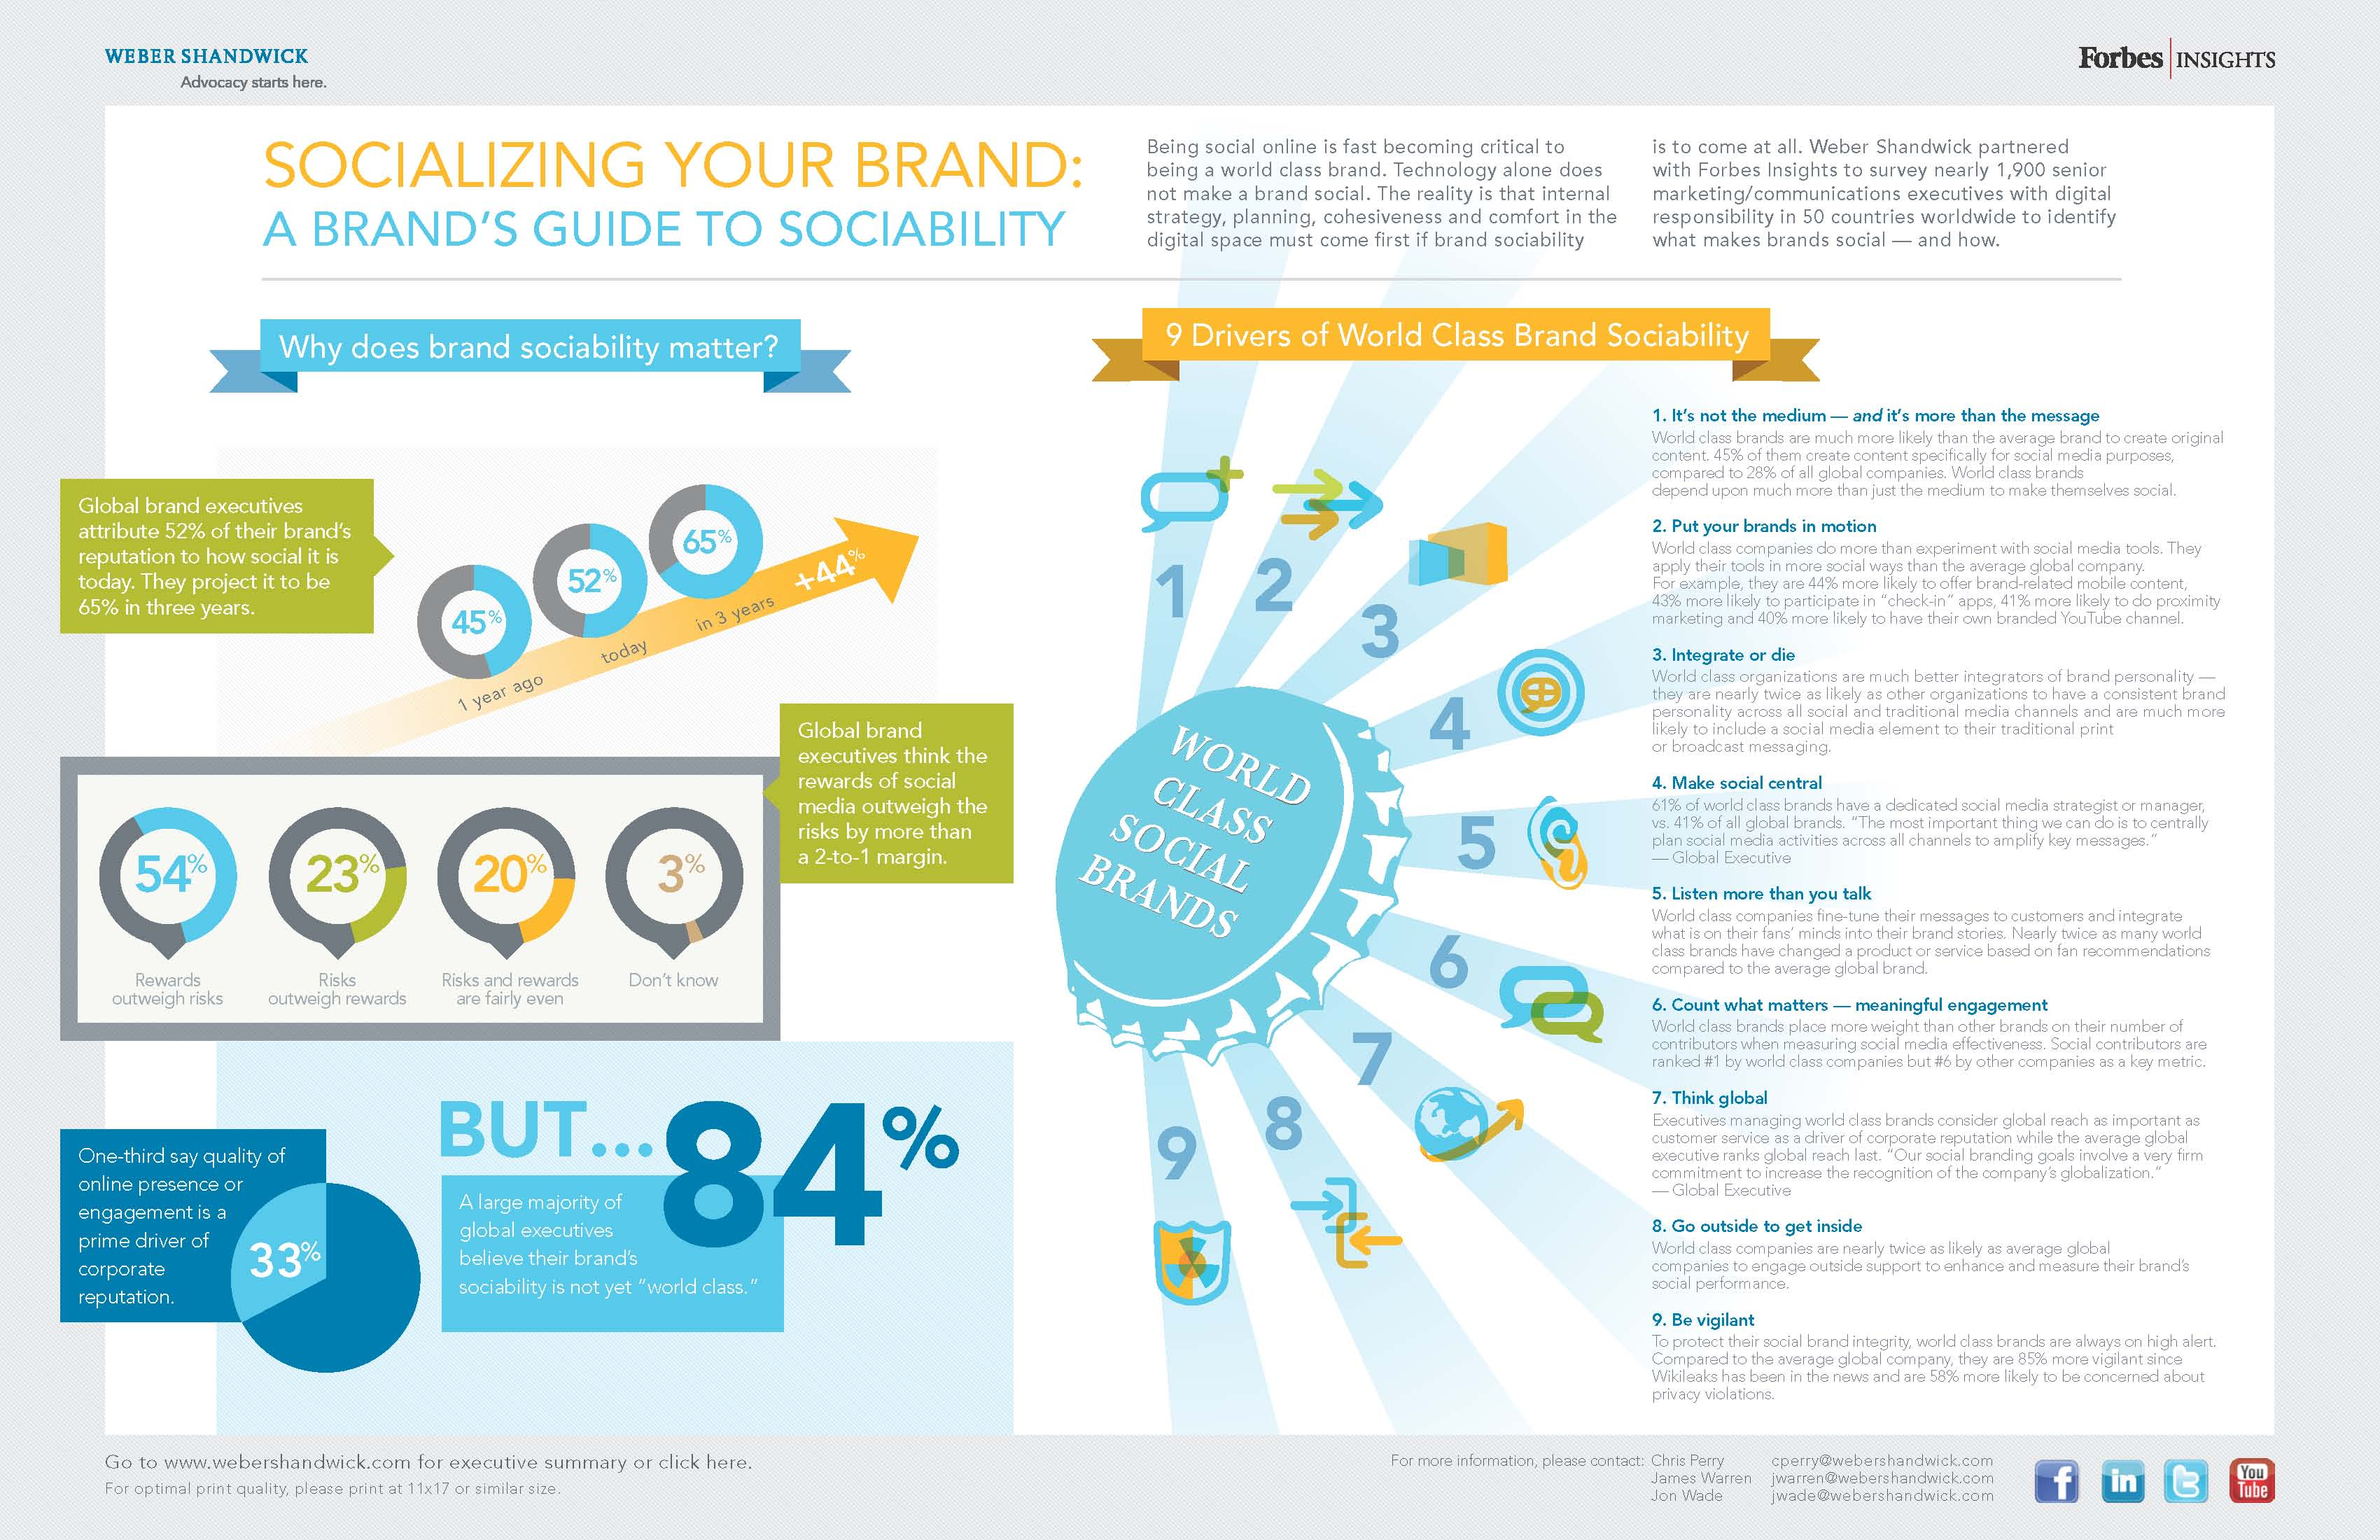 socializing-your-brand-a-brands-guide-to-sociability_50b63d83c3025